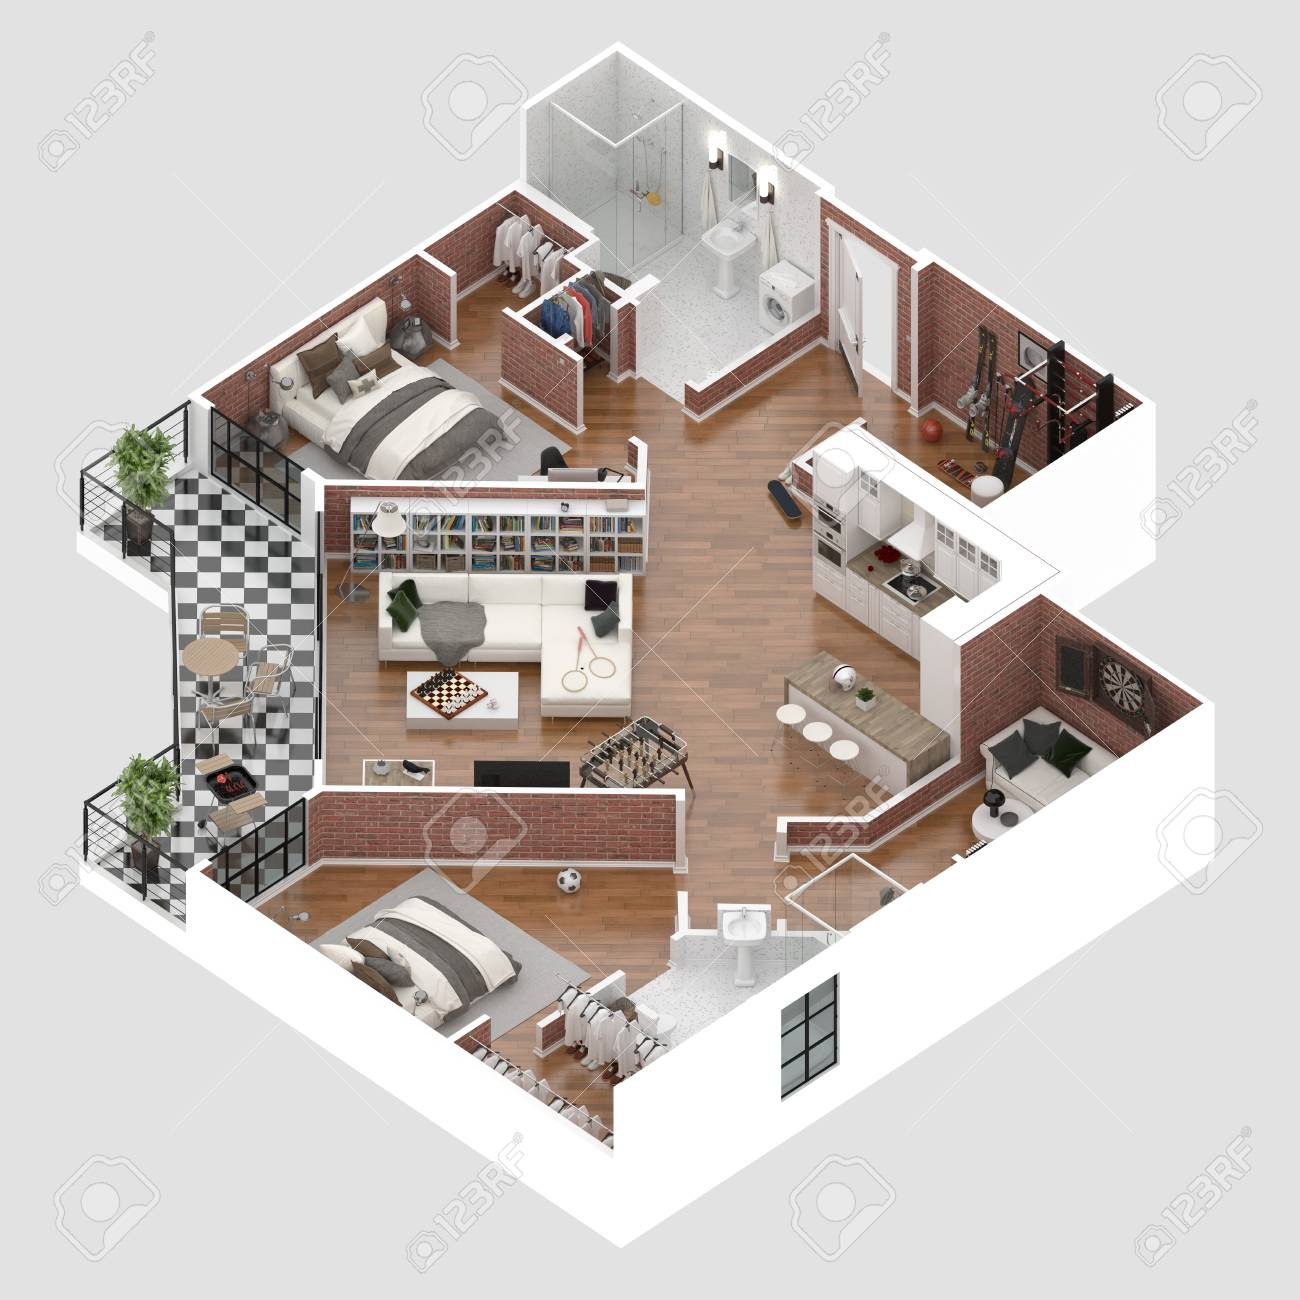 Floor Plan Of A House Top View 3D Illustration. Open Concept.. Stock ...